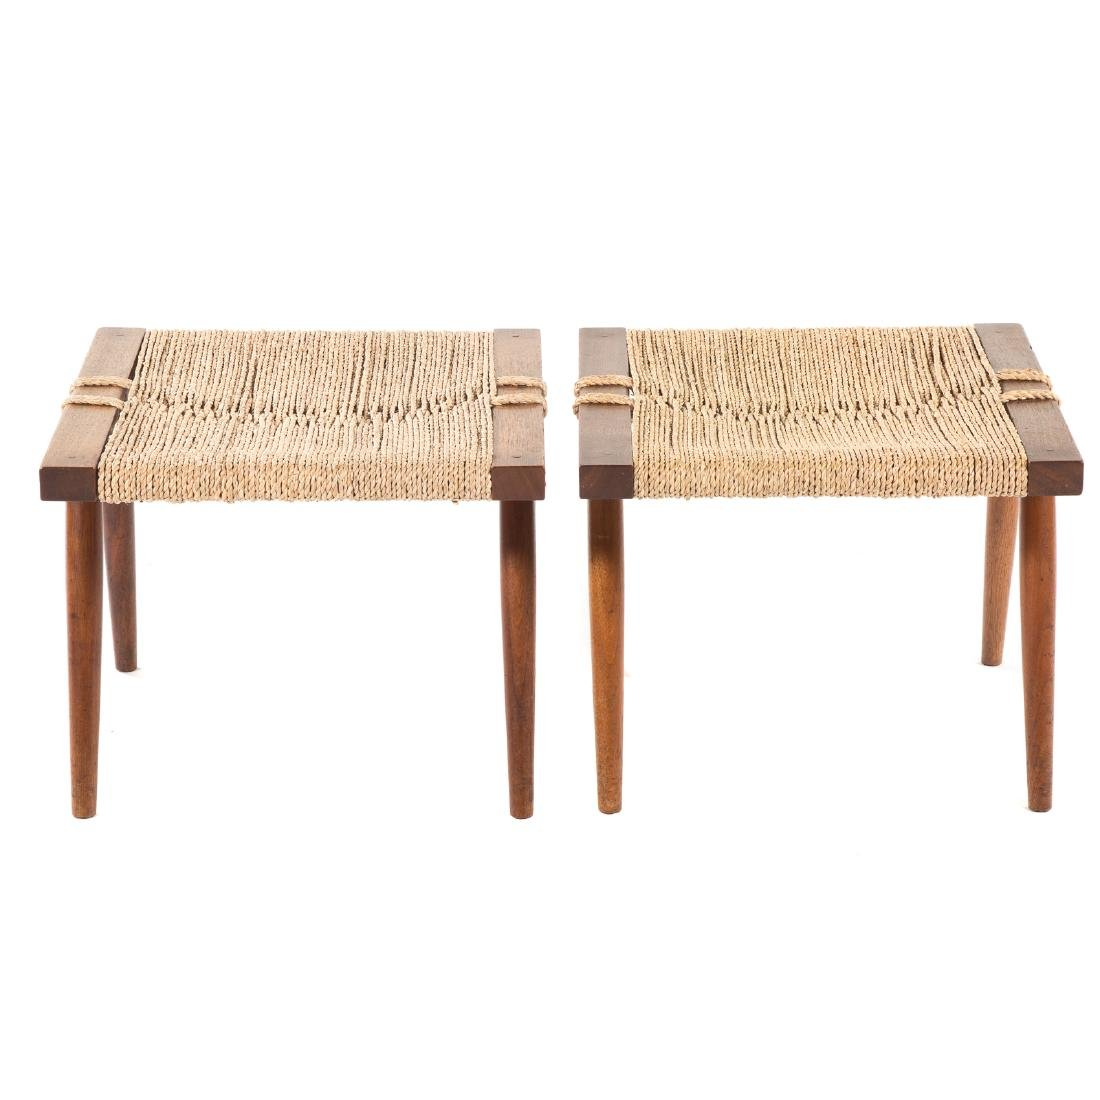 Pair of George Nakashima Grass Seated Stools - 3